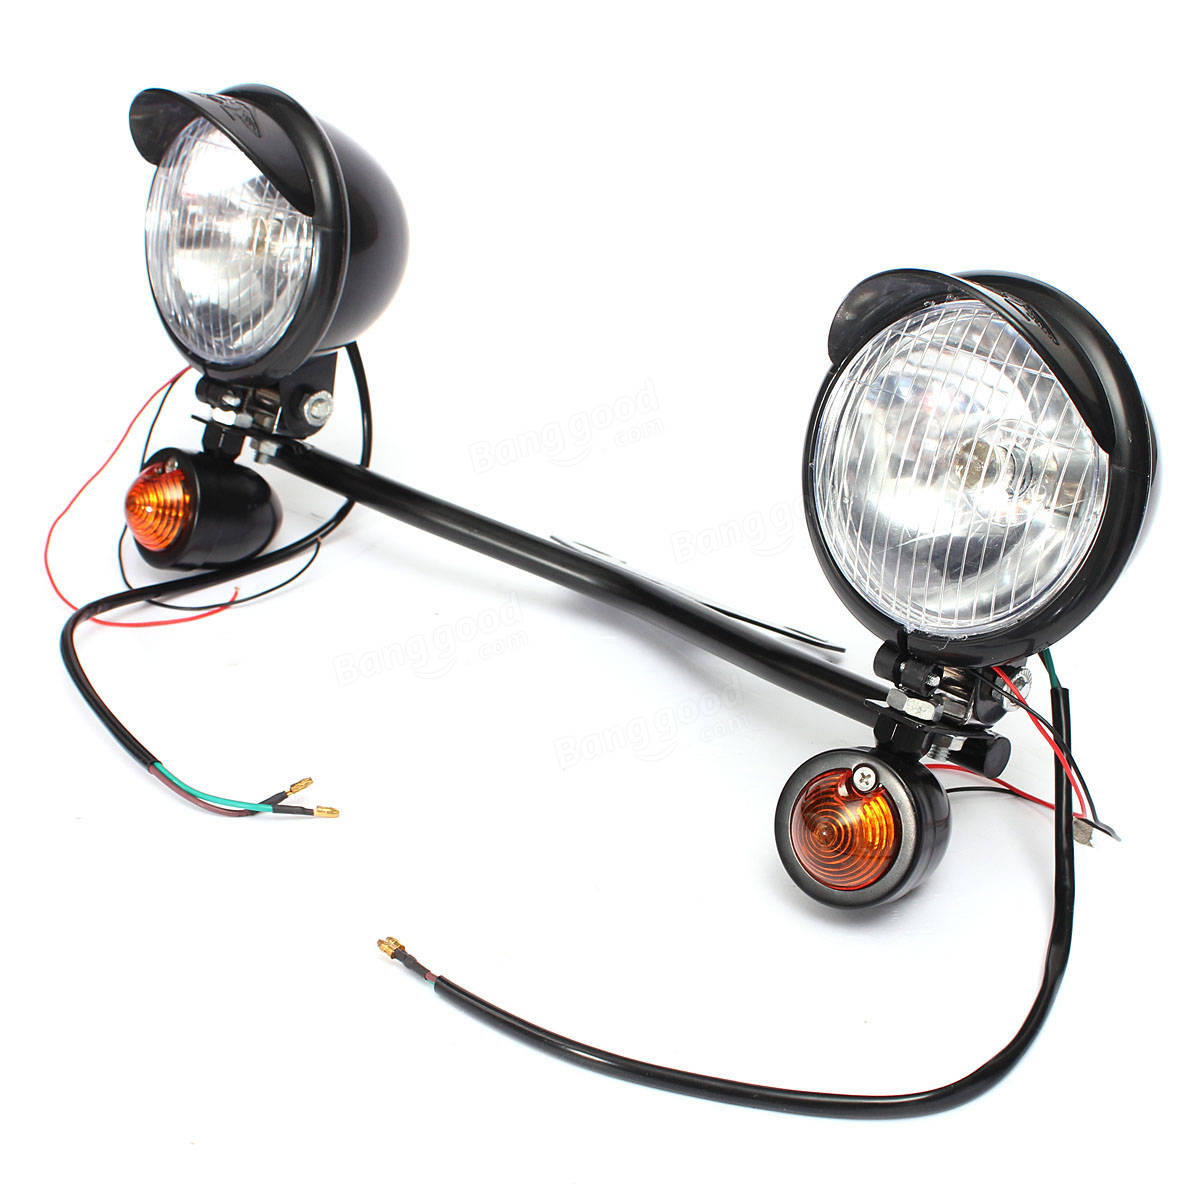 Motorcycle Spot Light Bar Set With Two Turn Signals For Harley Custom